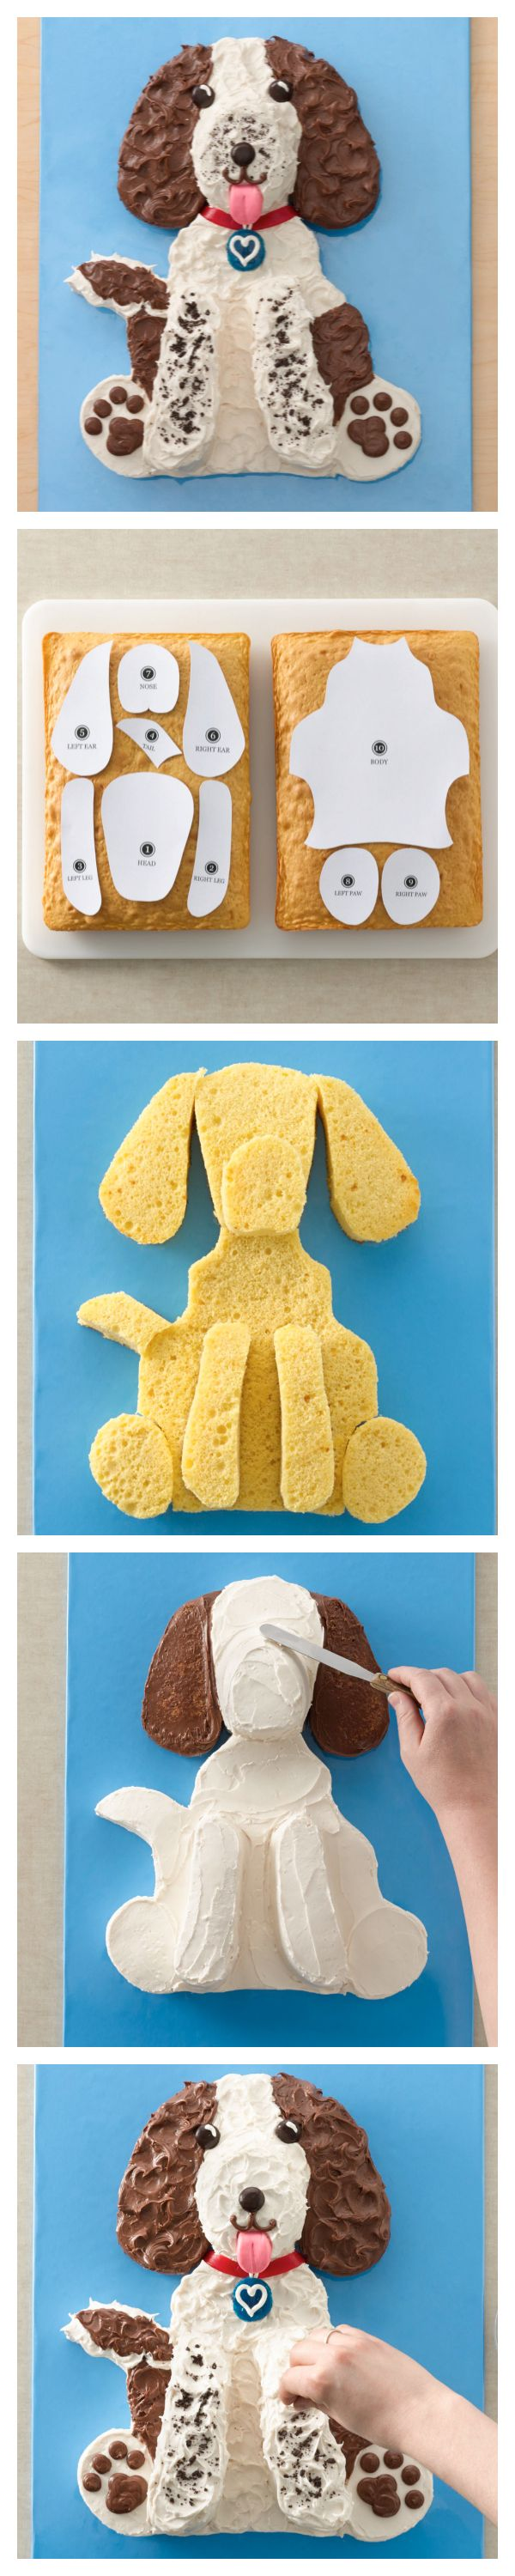 Springer Spaniel Dog Cake and template for your favorite pal!